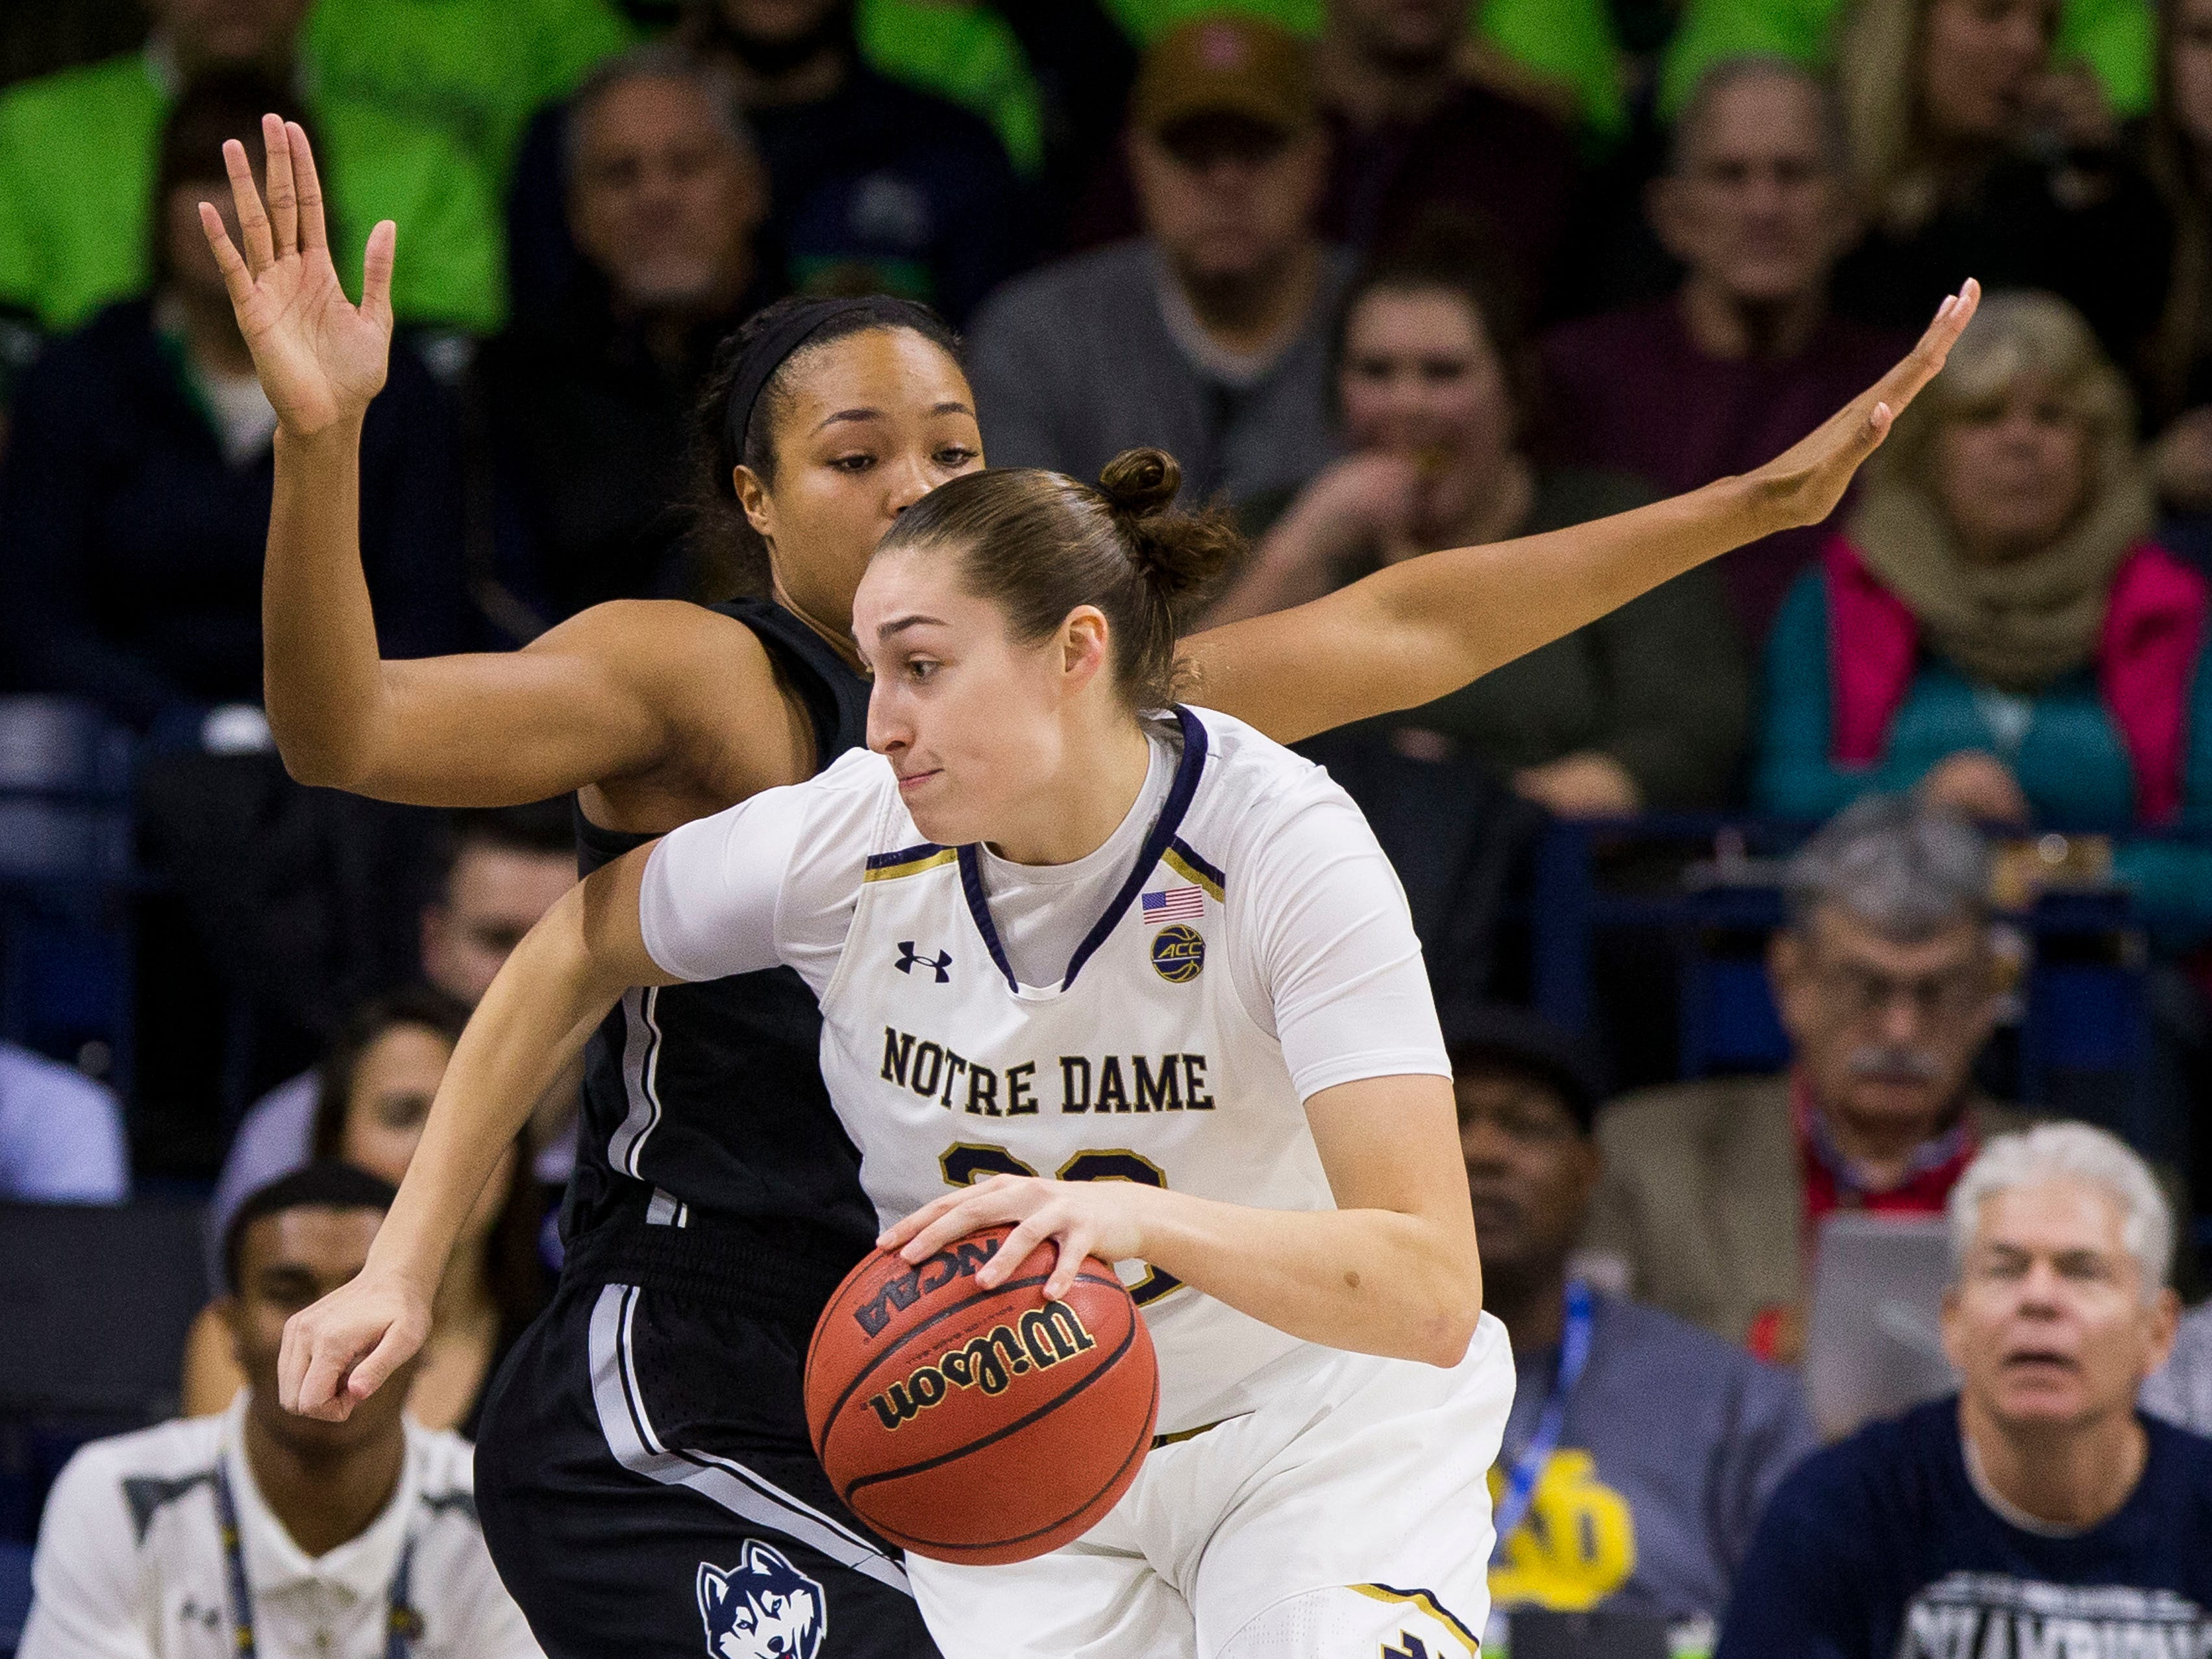 Notre Dame's Jessica Shepard, front, moves by Connecticut's Napheesa Collier during the first half of an NCAA college basketball game Sunday, Dec. 2, 2018, in South Bend, Ind.